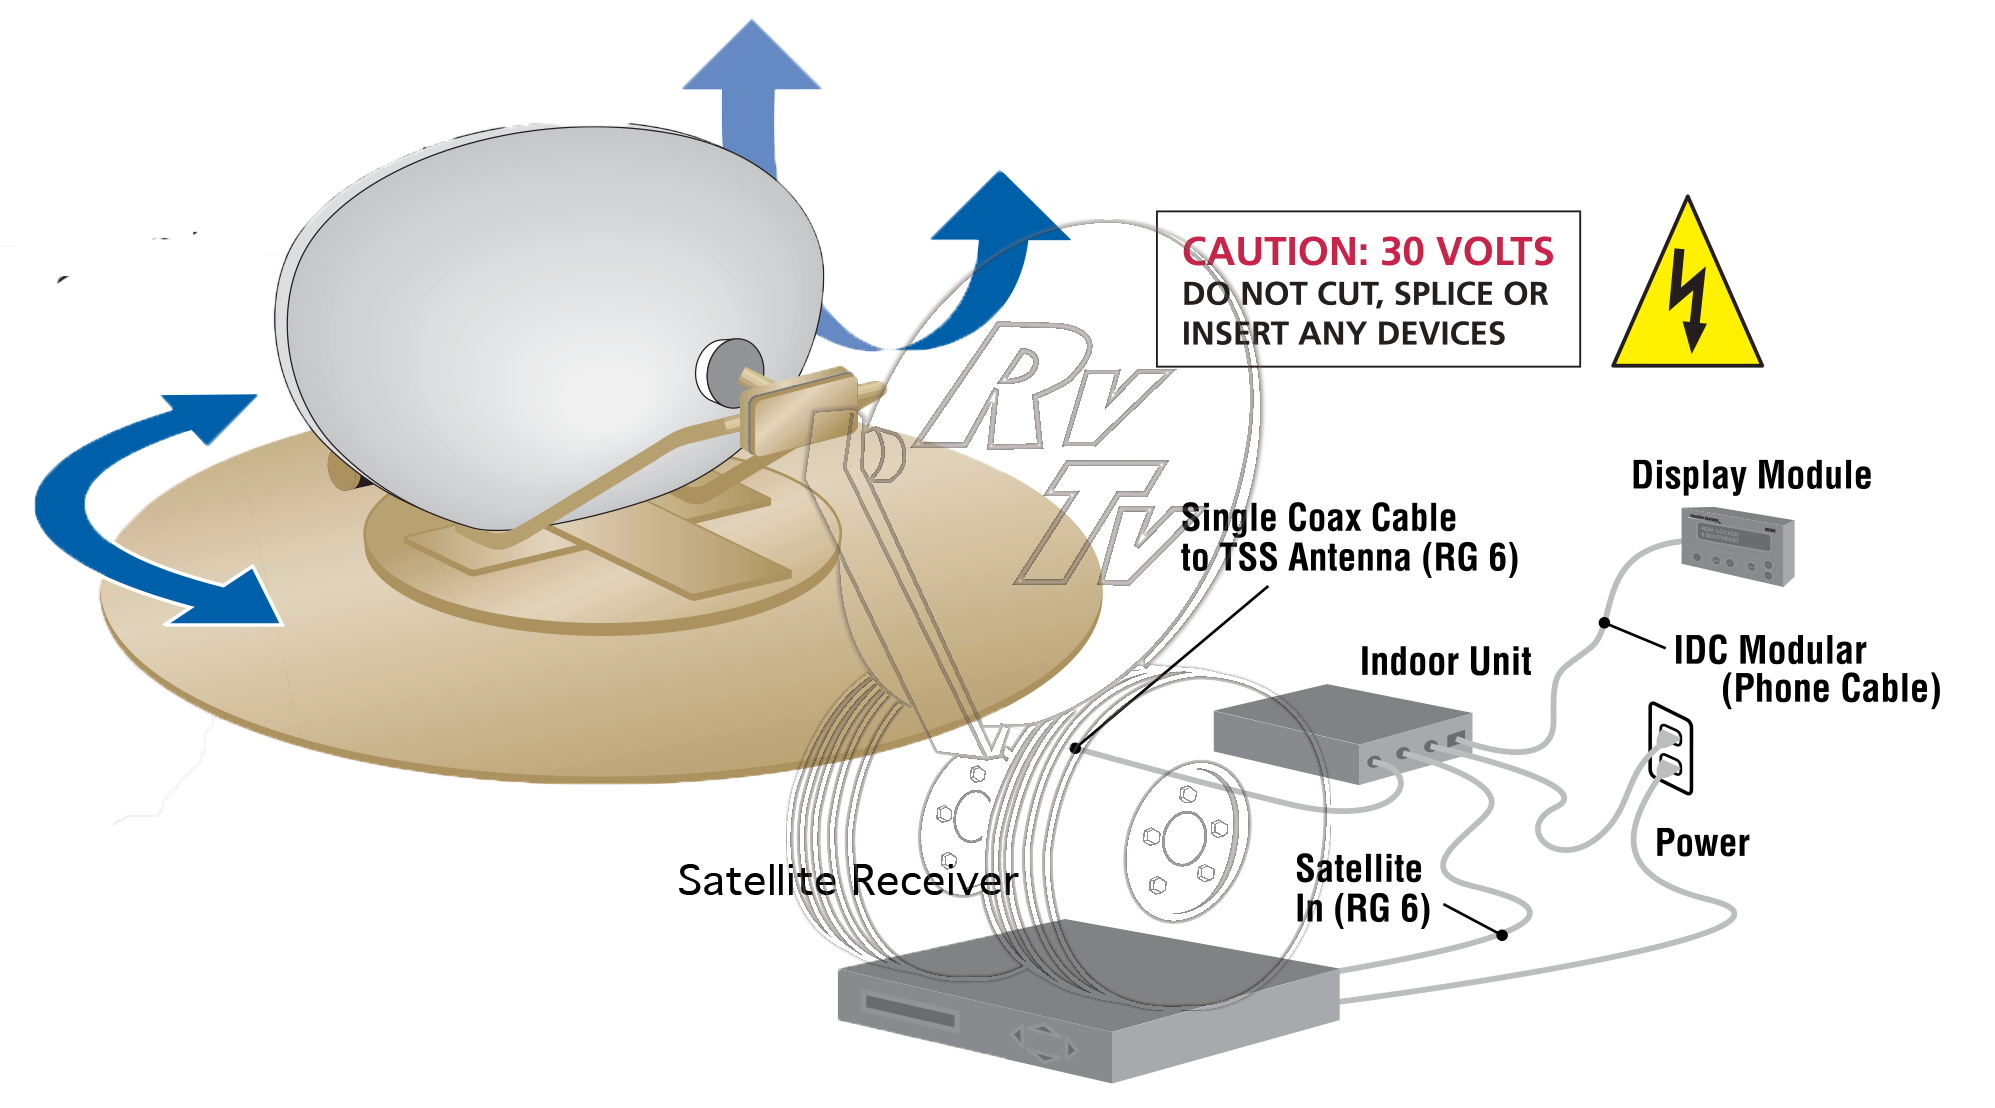 rv satelitte wiring diagram wiring diagram and schematic satellite using cable connection on outside of rv irv2 forums